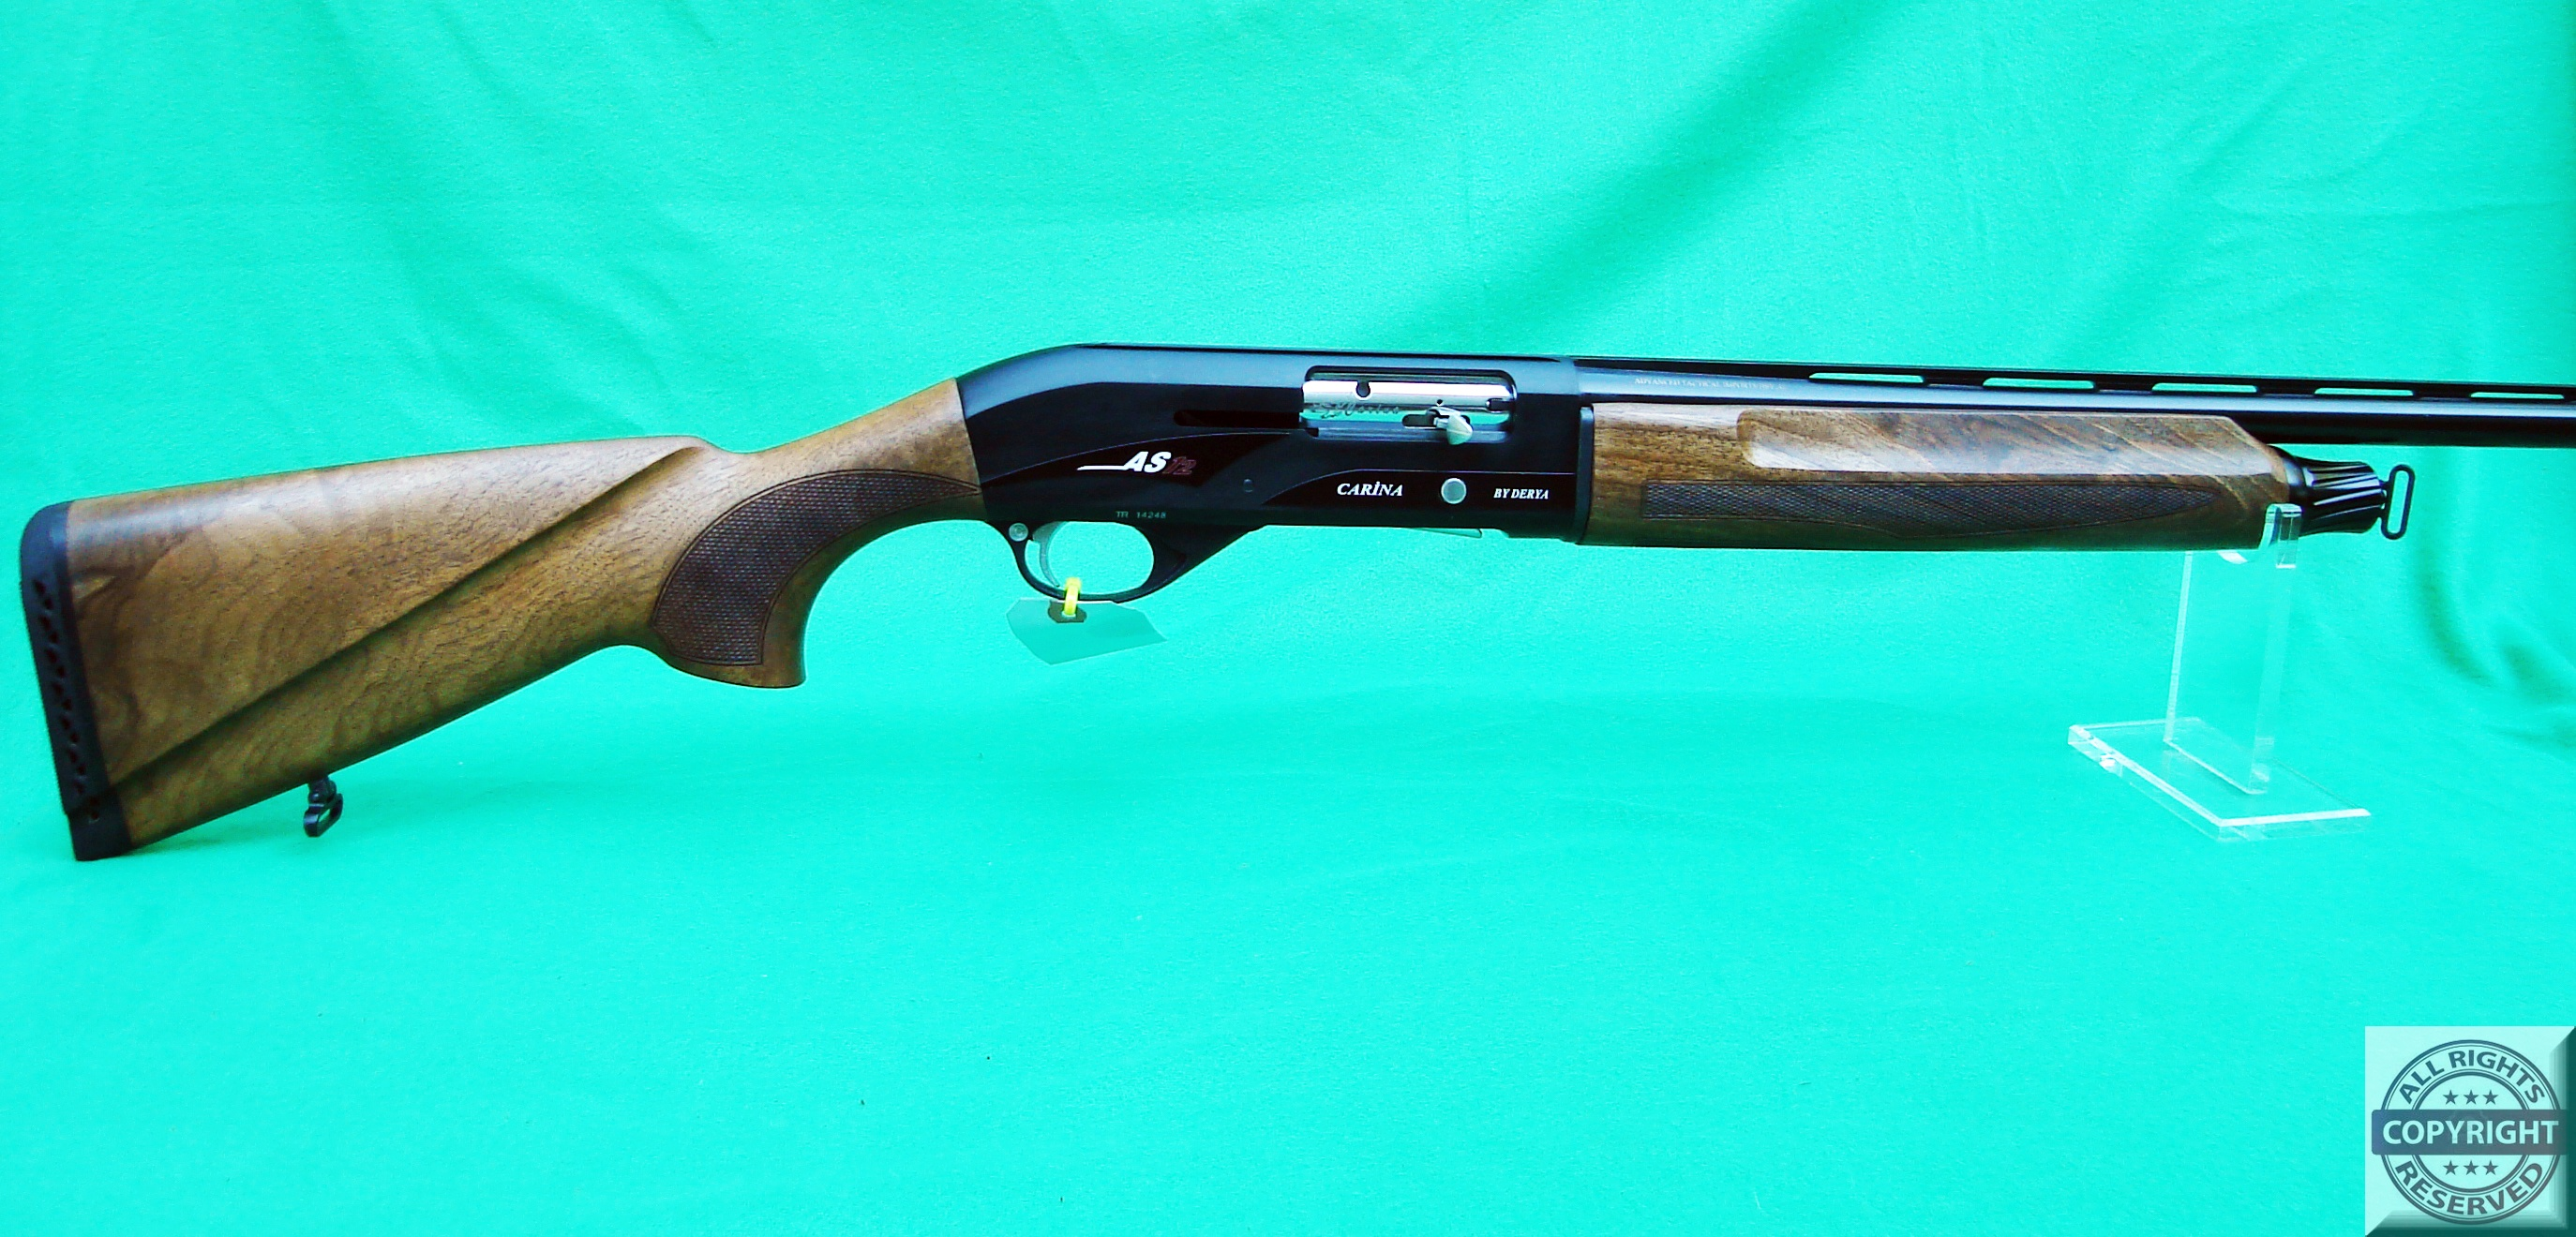 carina-as-12-hunting-shotgun-advanced-tactical-imports-huntsville-al-256-534-4788